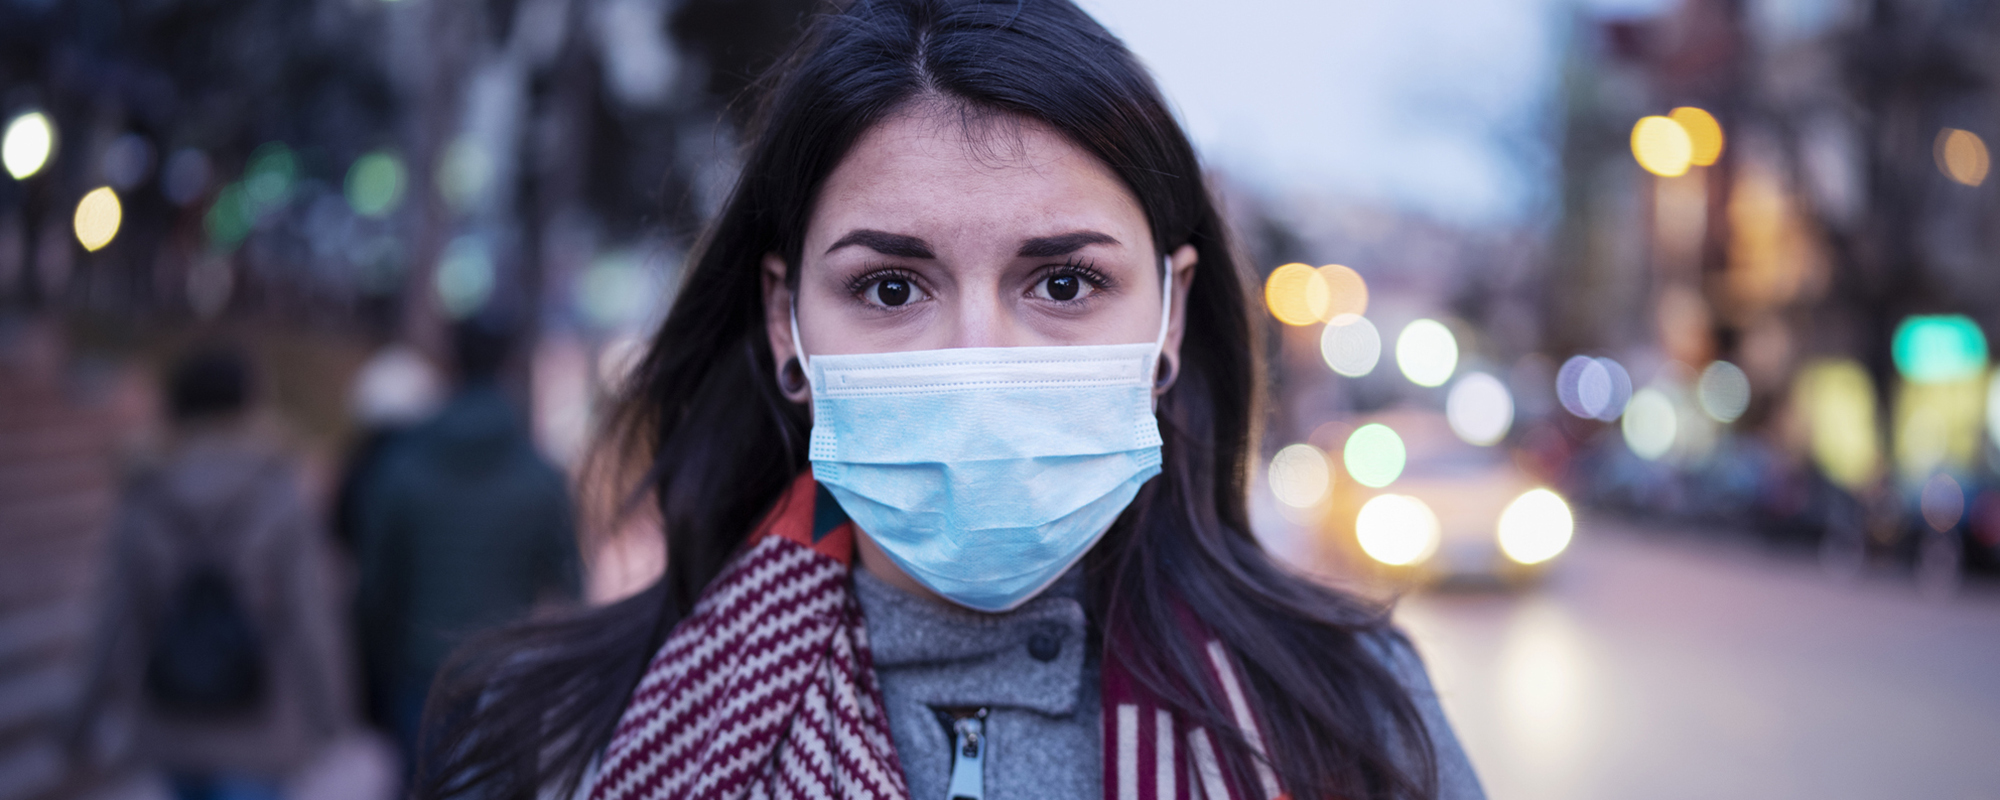 Can rethinking design stop epidemics such as COVID-19? Picture: Getty